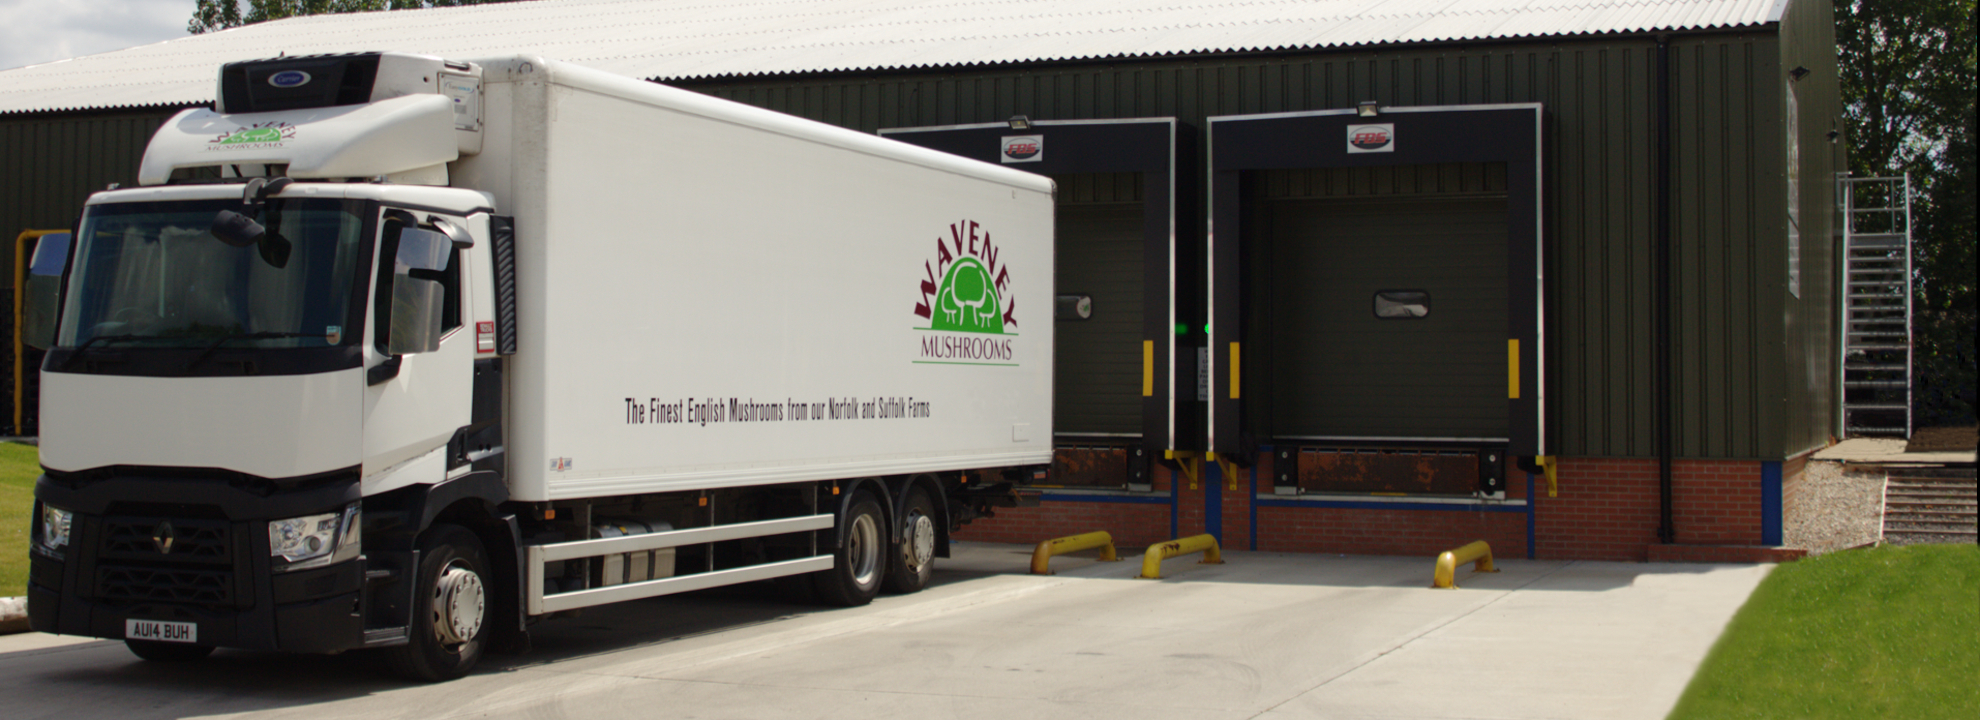 Lorry-Banner-1